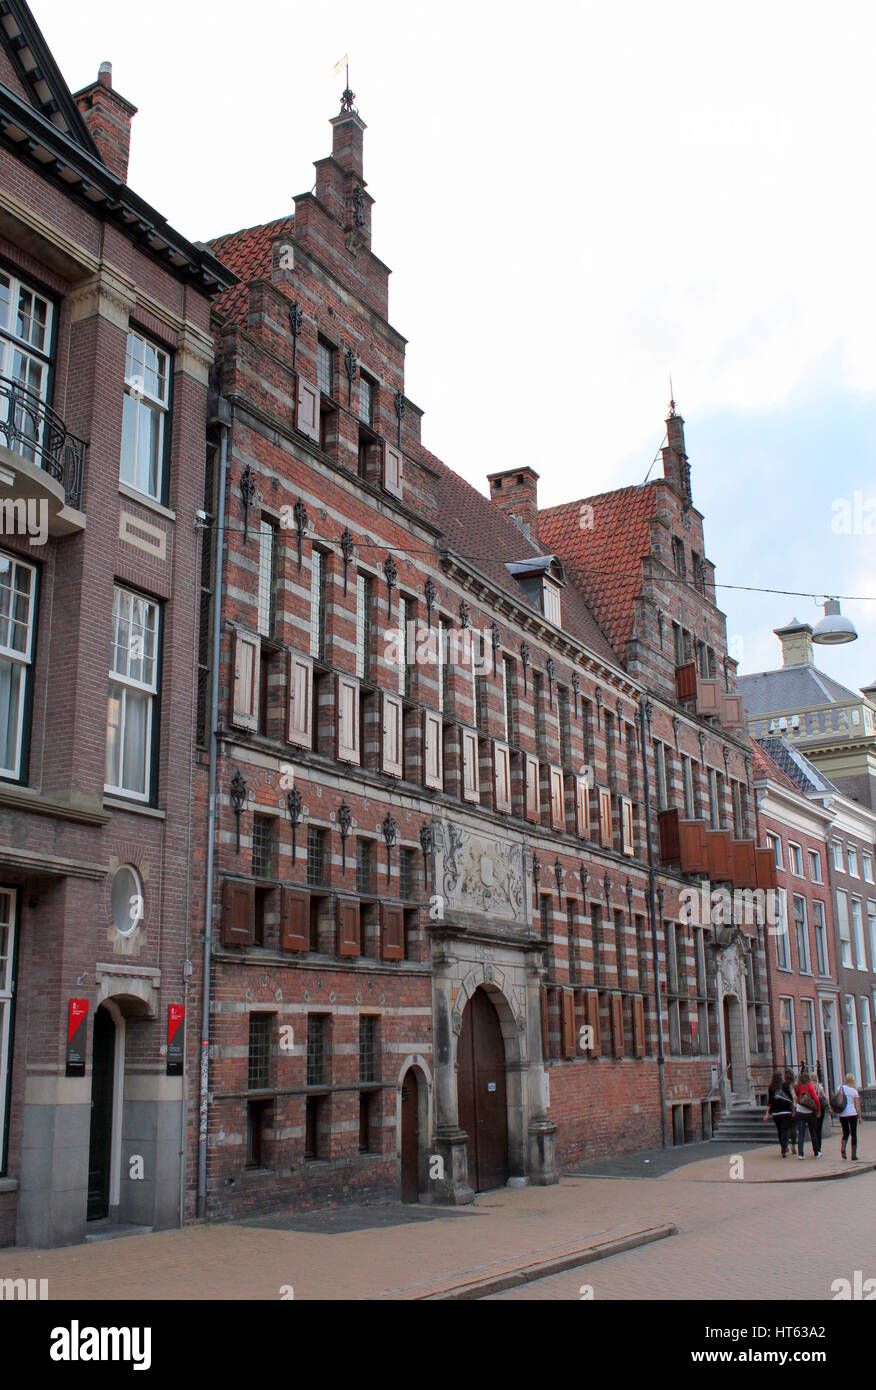 17th century Former Court of Justice at Oude Boteringstraat in Groningen, The Netherlands. Architecture in Dutch - Stock Image